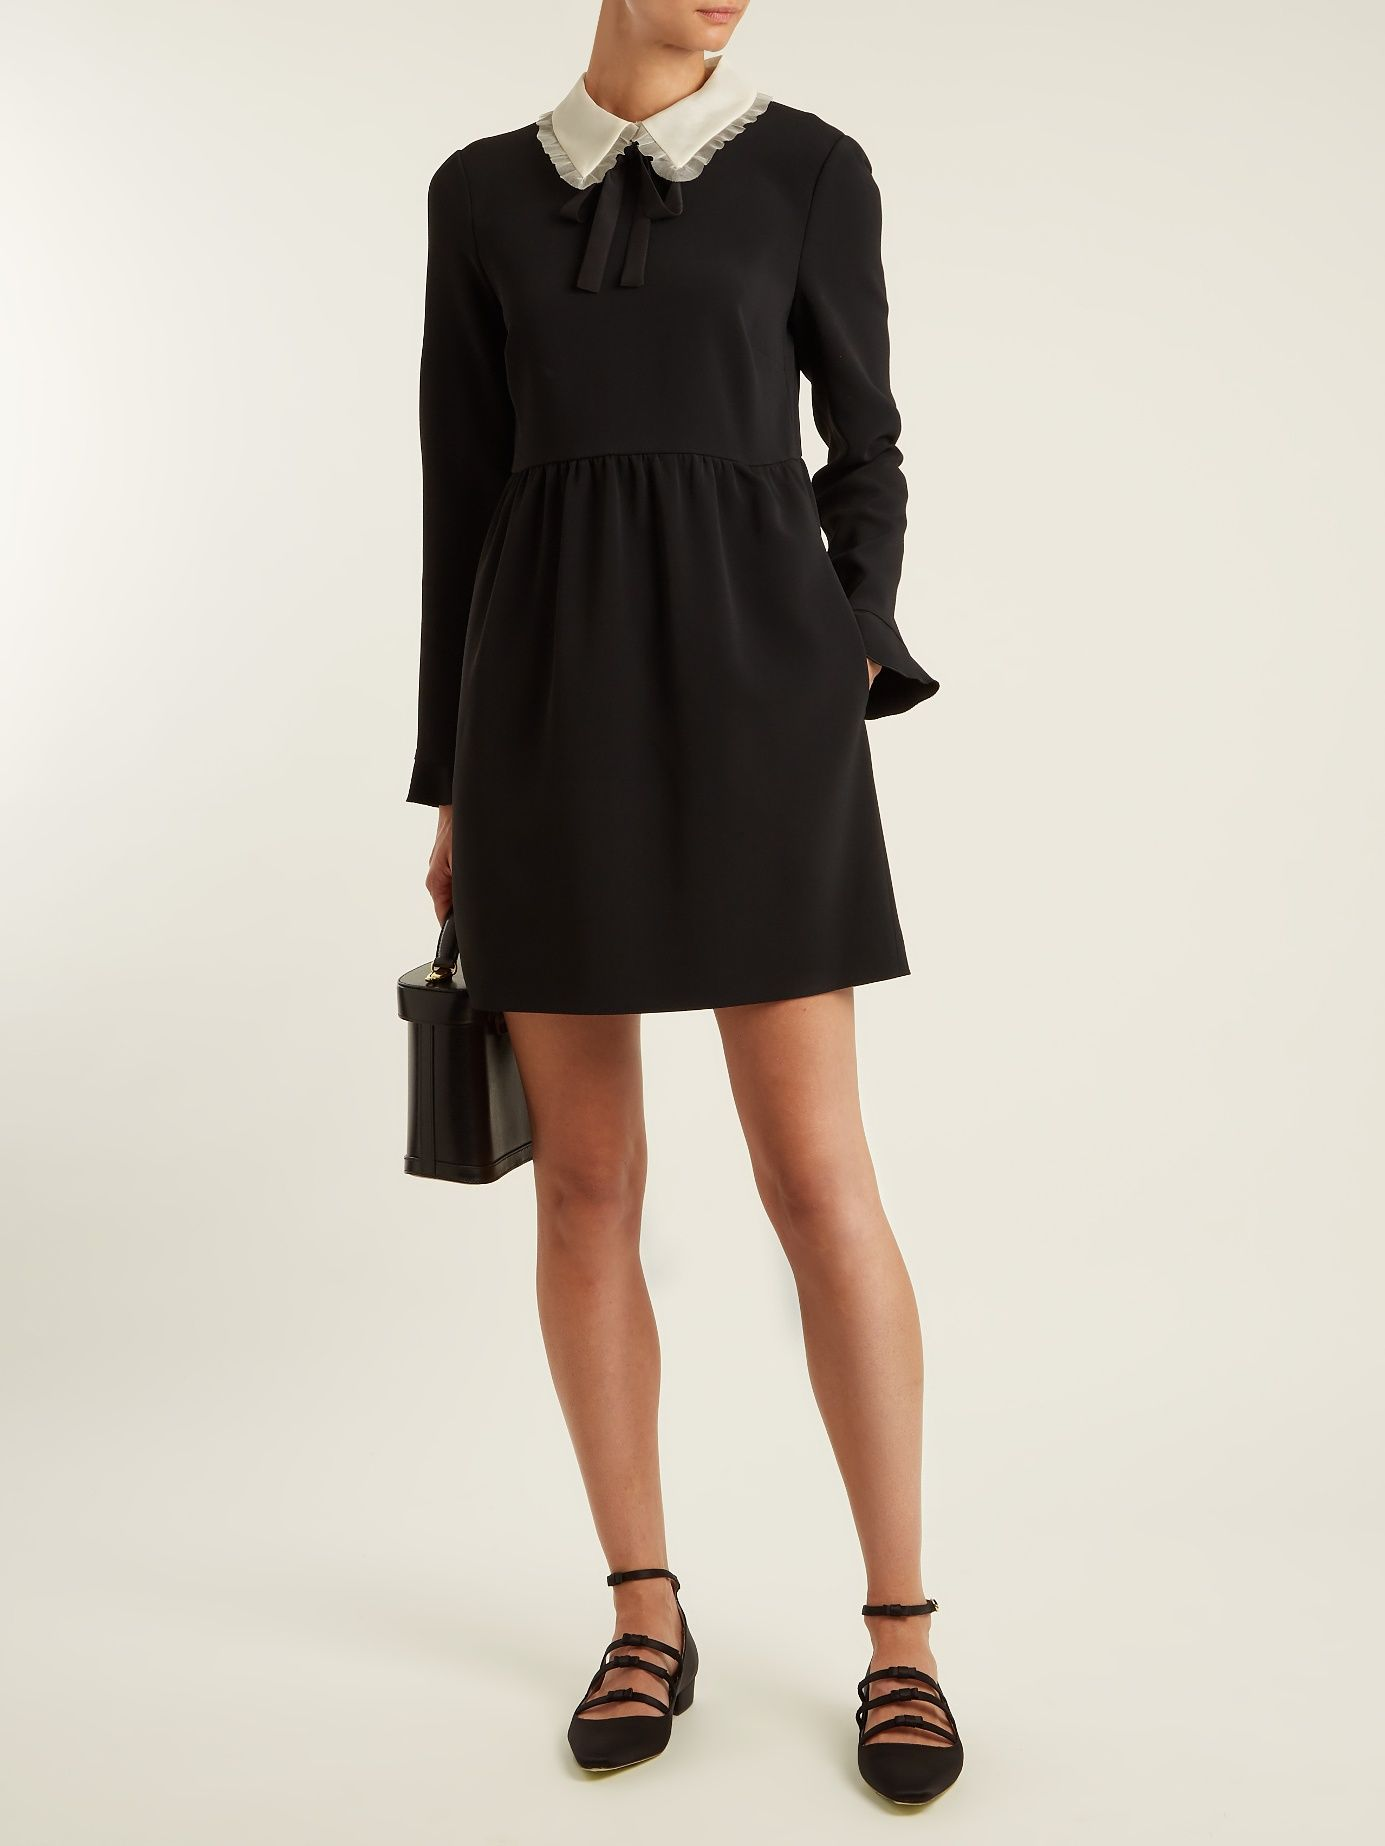 Click here to buy redvalentino stretchcrepe longsleeved dress at